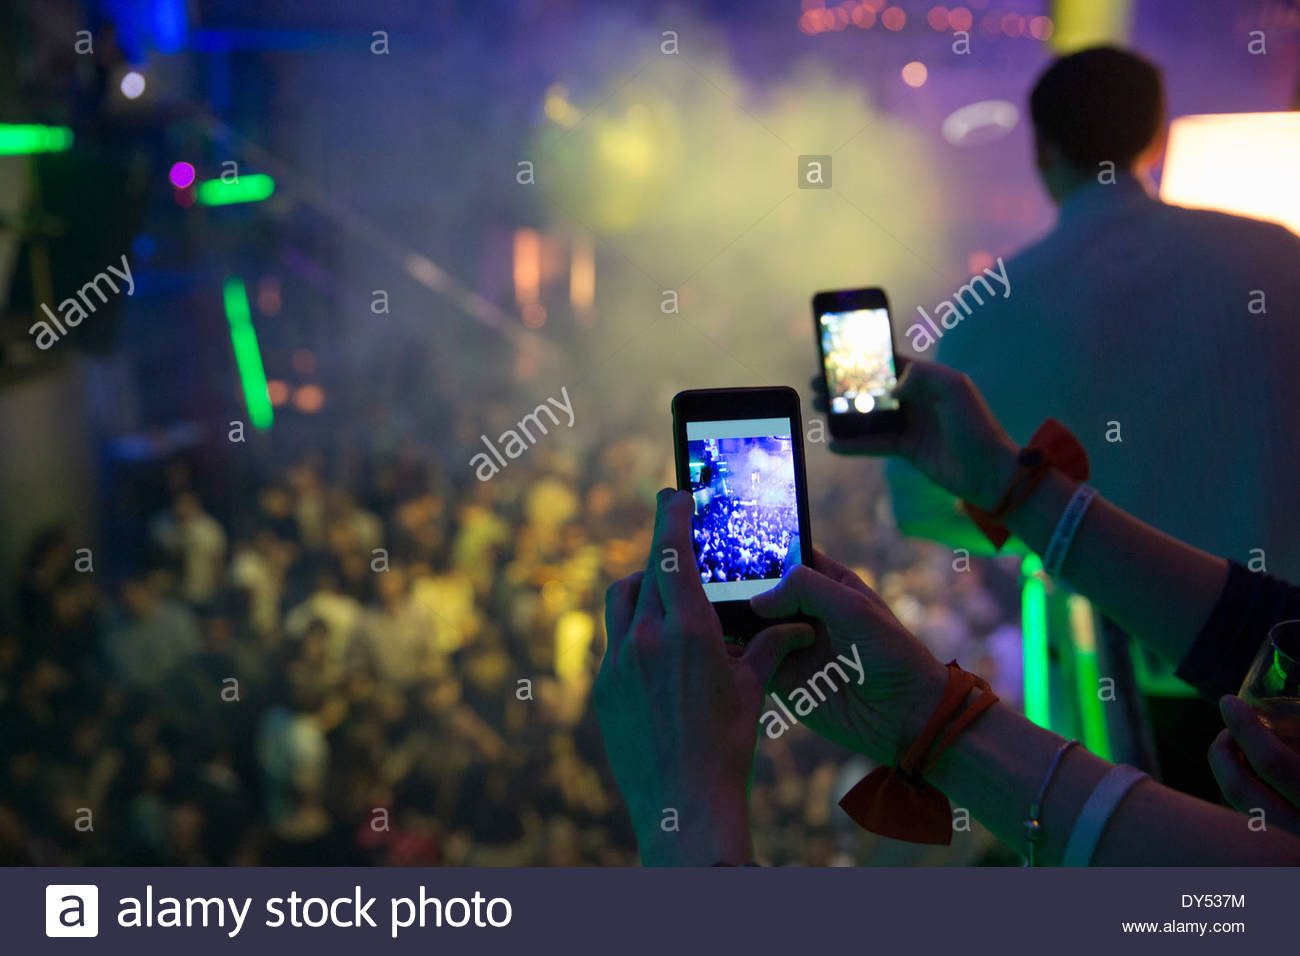 Women taking photograph in nightclub with cellular phone - Stock Image